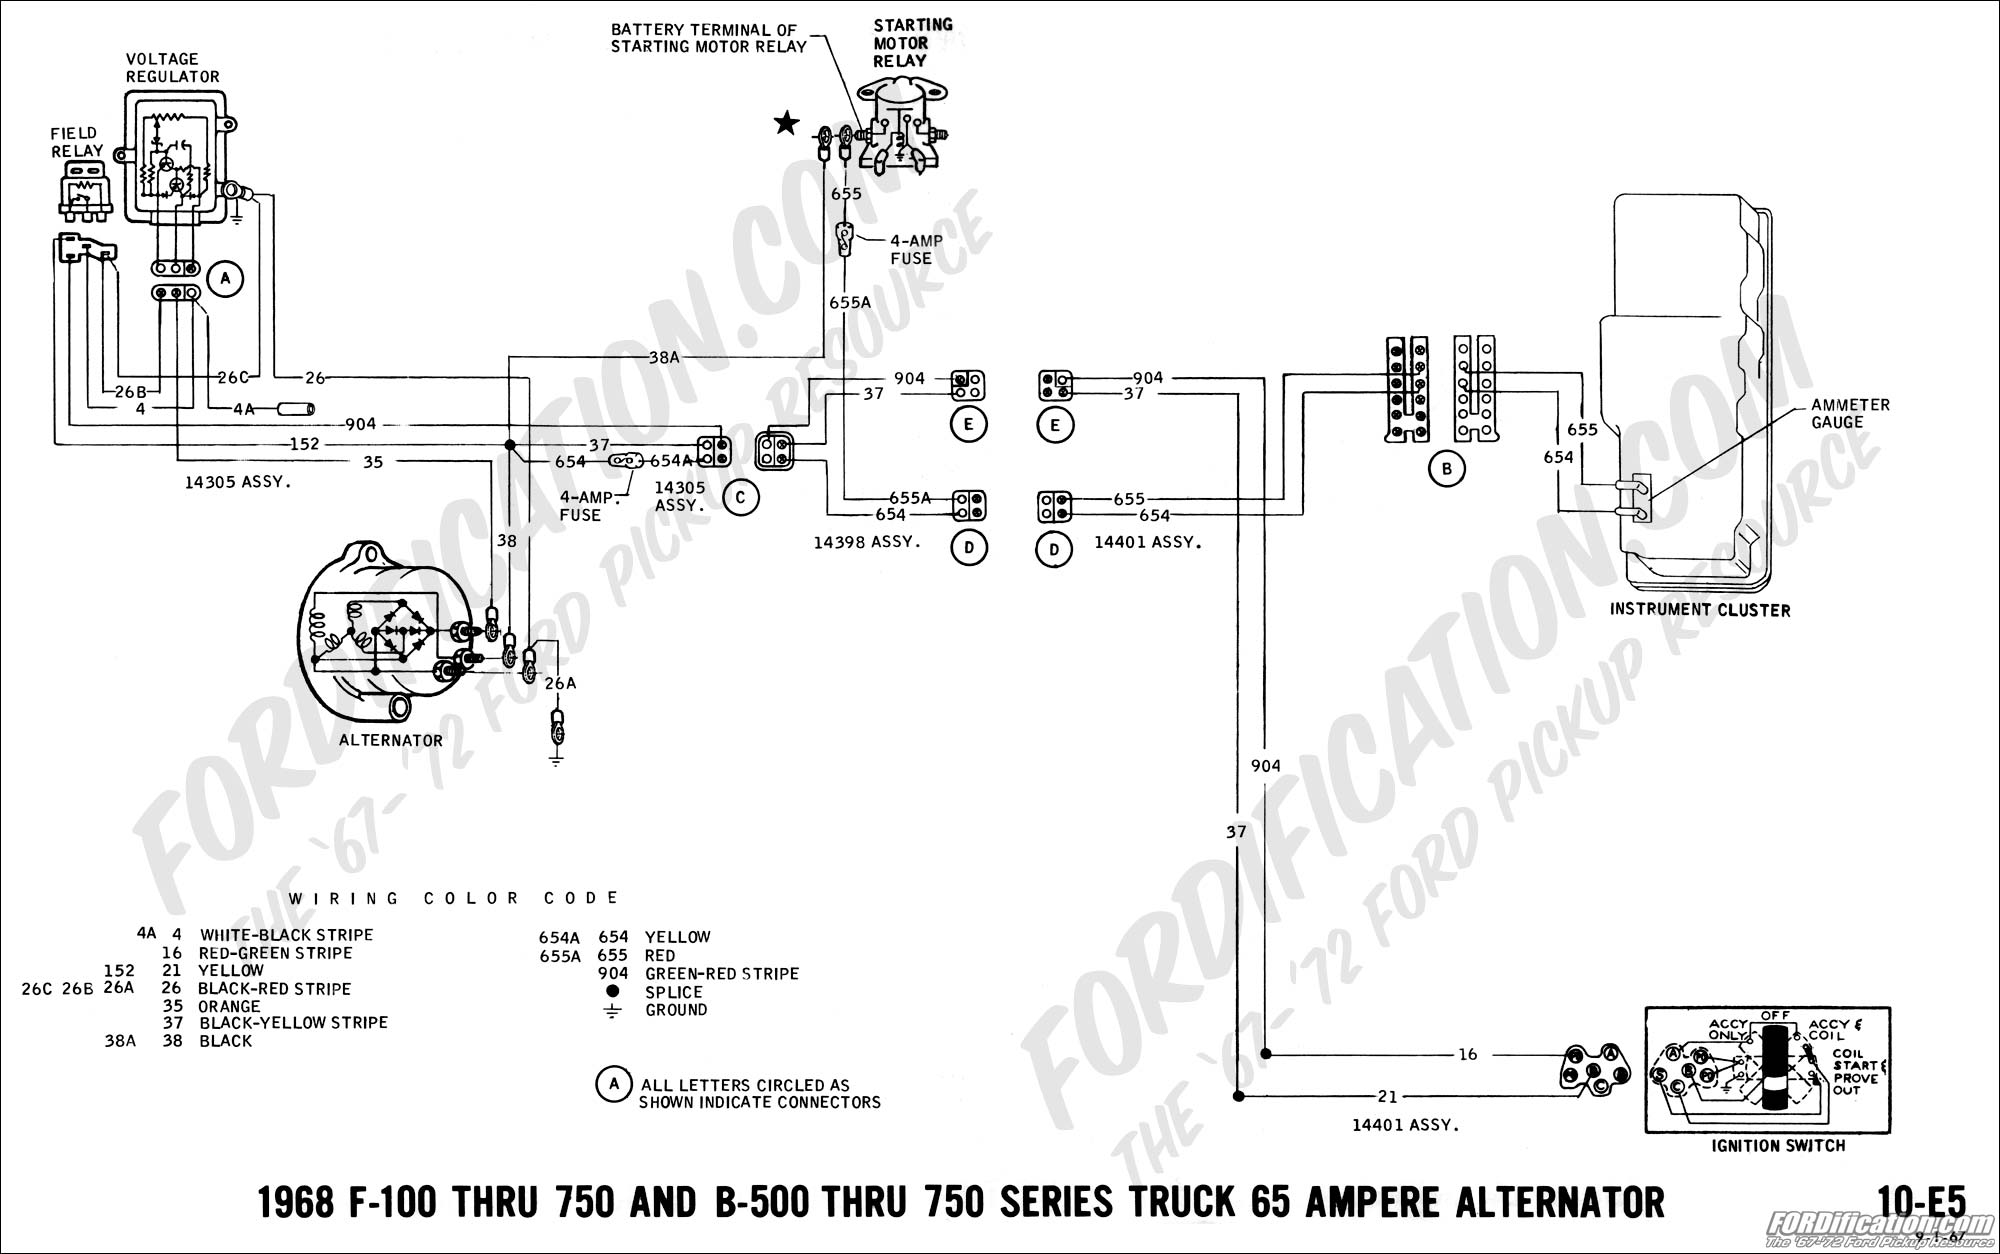 68 07 ford truck technical drawings and schematics section h wiring 1971 ford f100 ignition switch wiring diagram at gsmportal.co